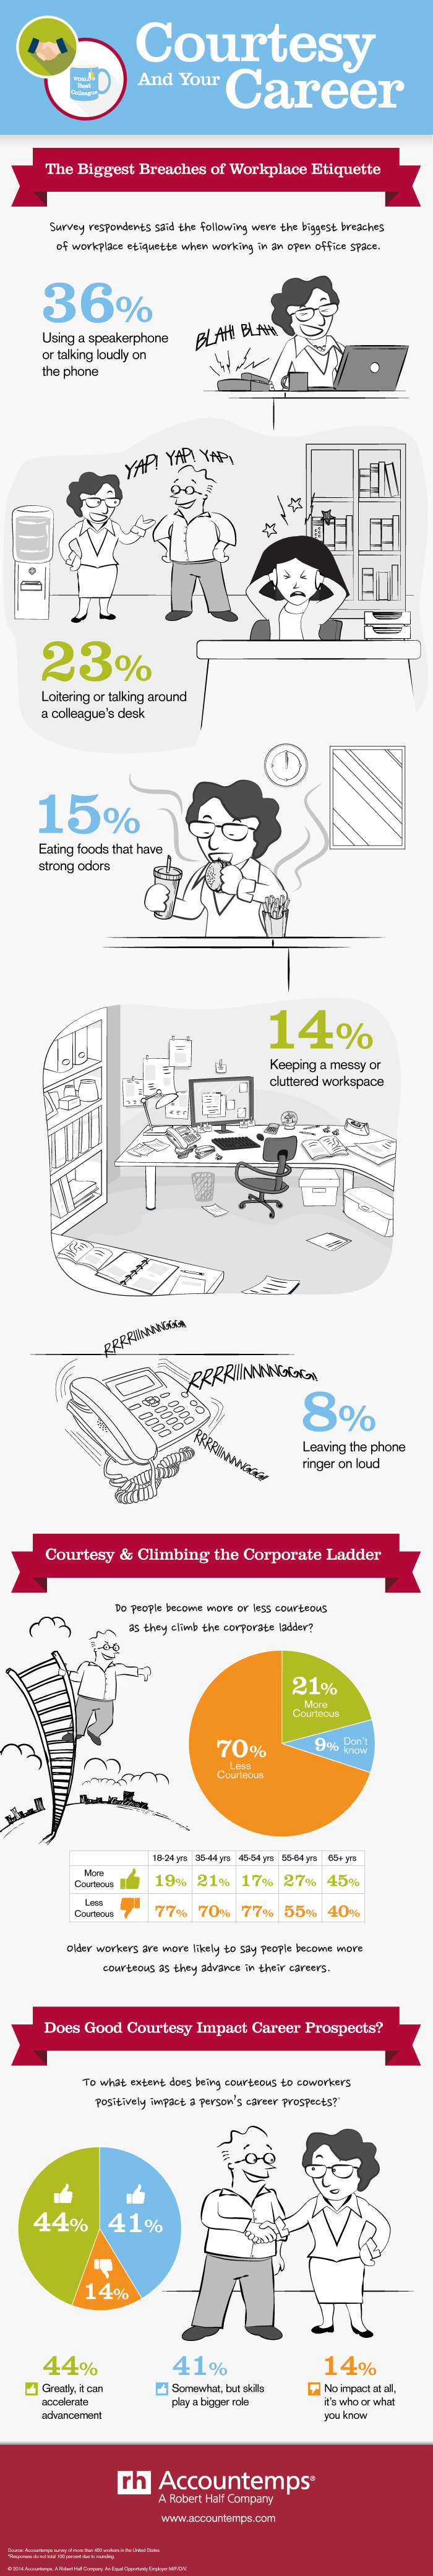 Top 5 Workplace Etiquette Breaches in an Open Office Space